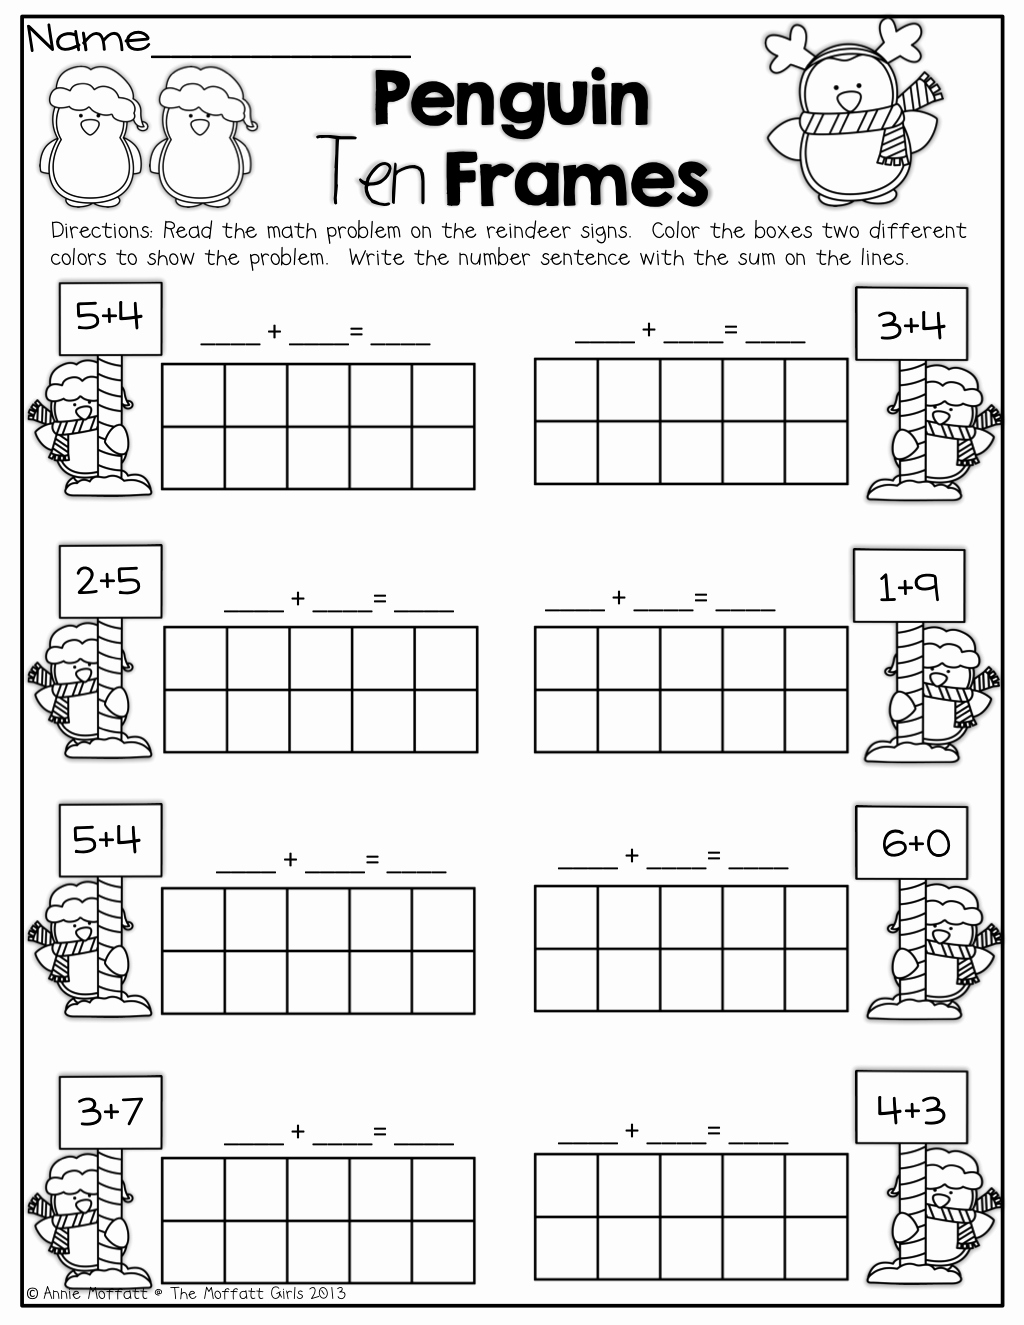 Ten Frames Worksheets Elegant Penguin 10 Frames Kinderland Collaborative